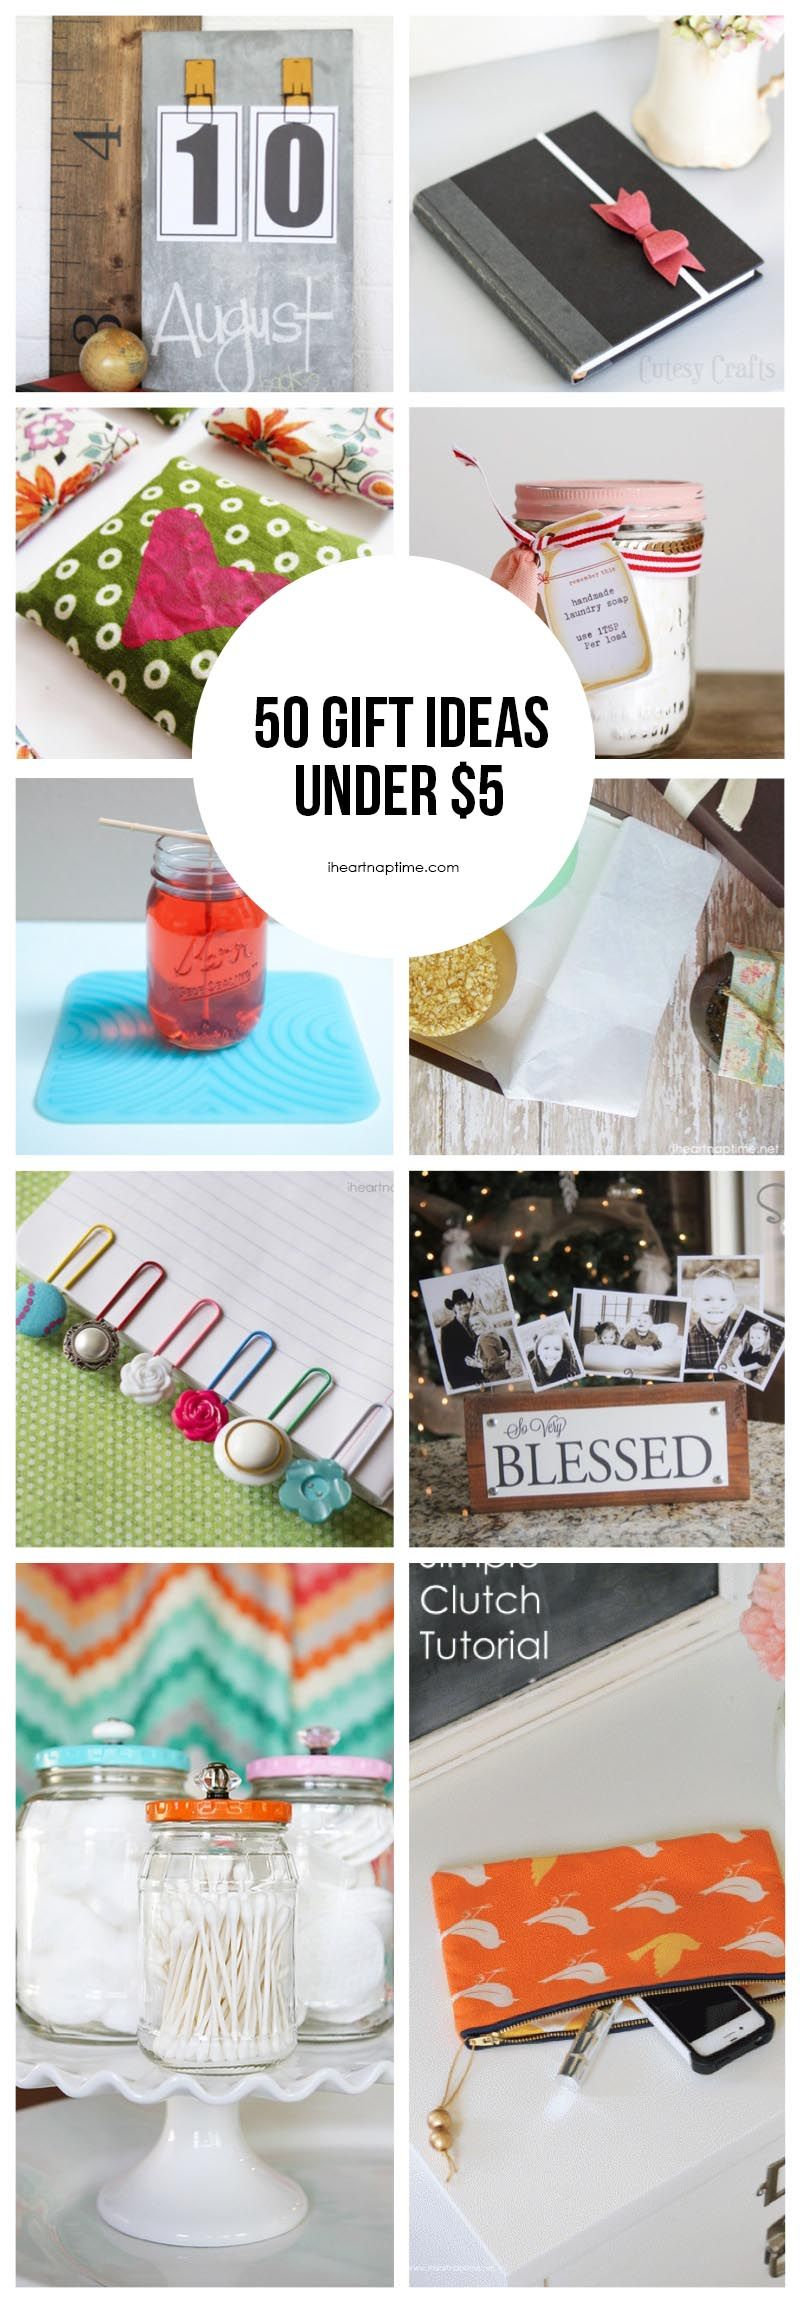 50 homemade gift ideas to make for under $5 featured on ...